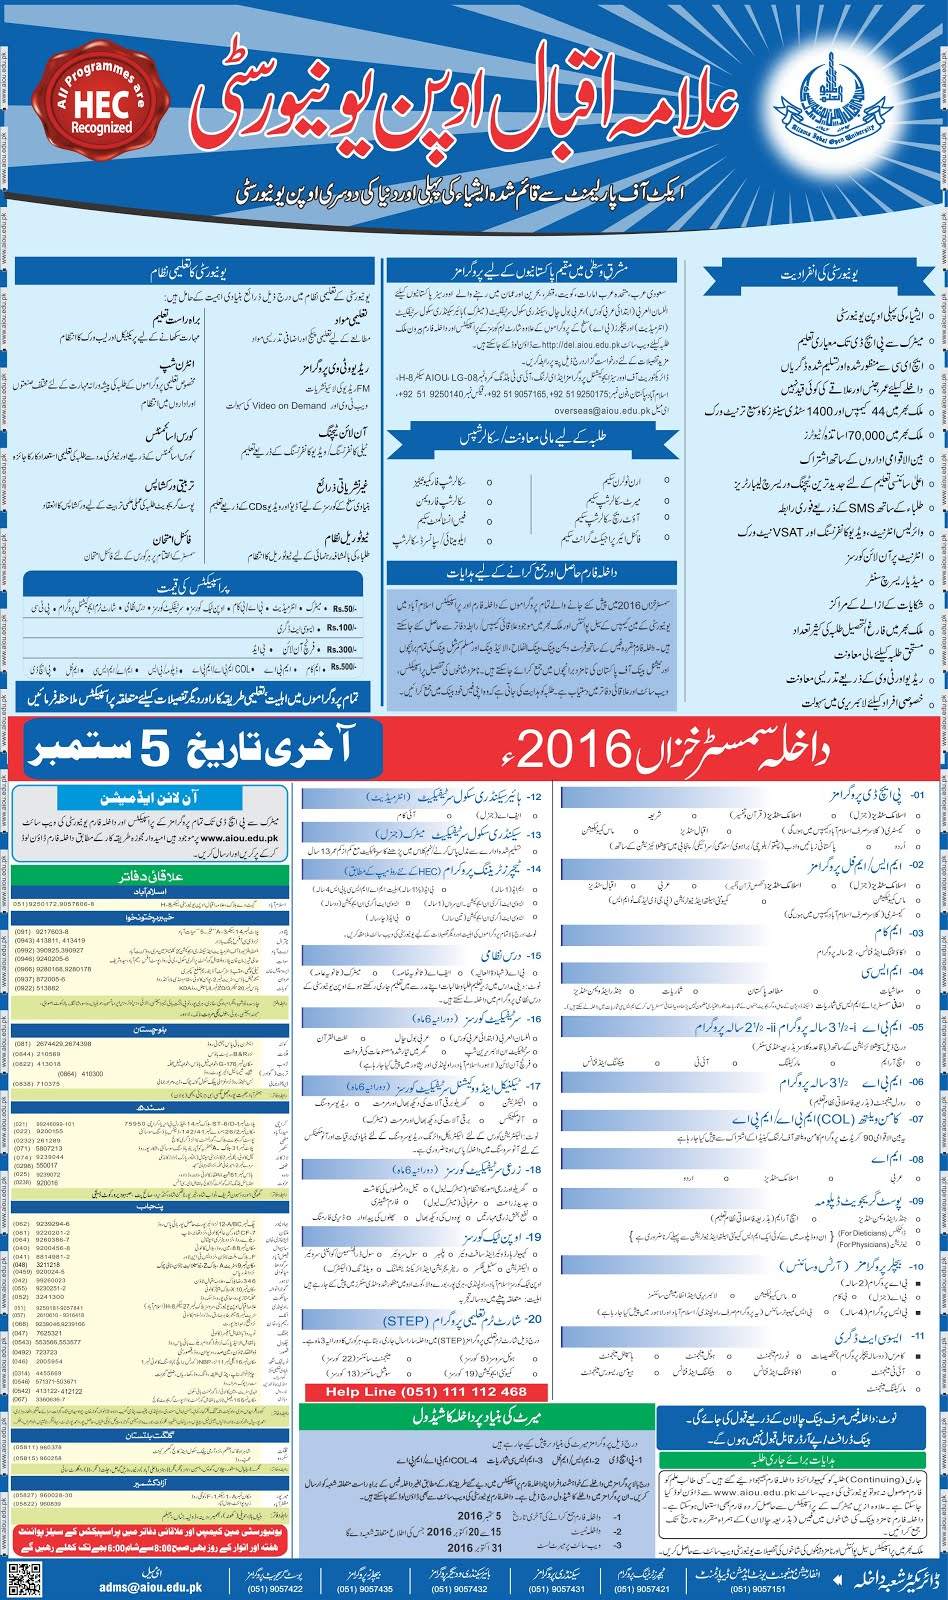 Allama Iqbal Open University Admissions 2016 - Apply online